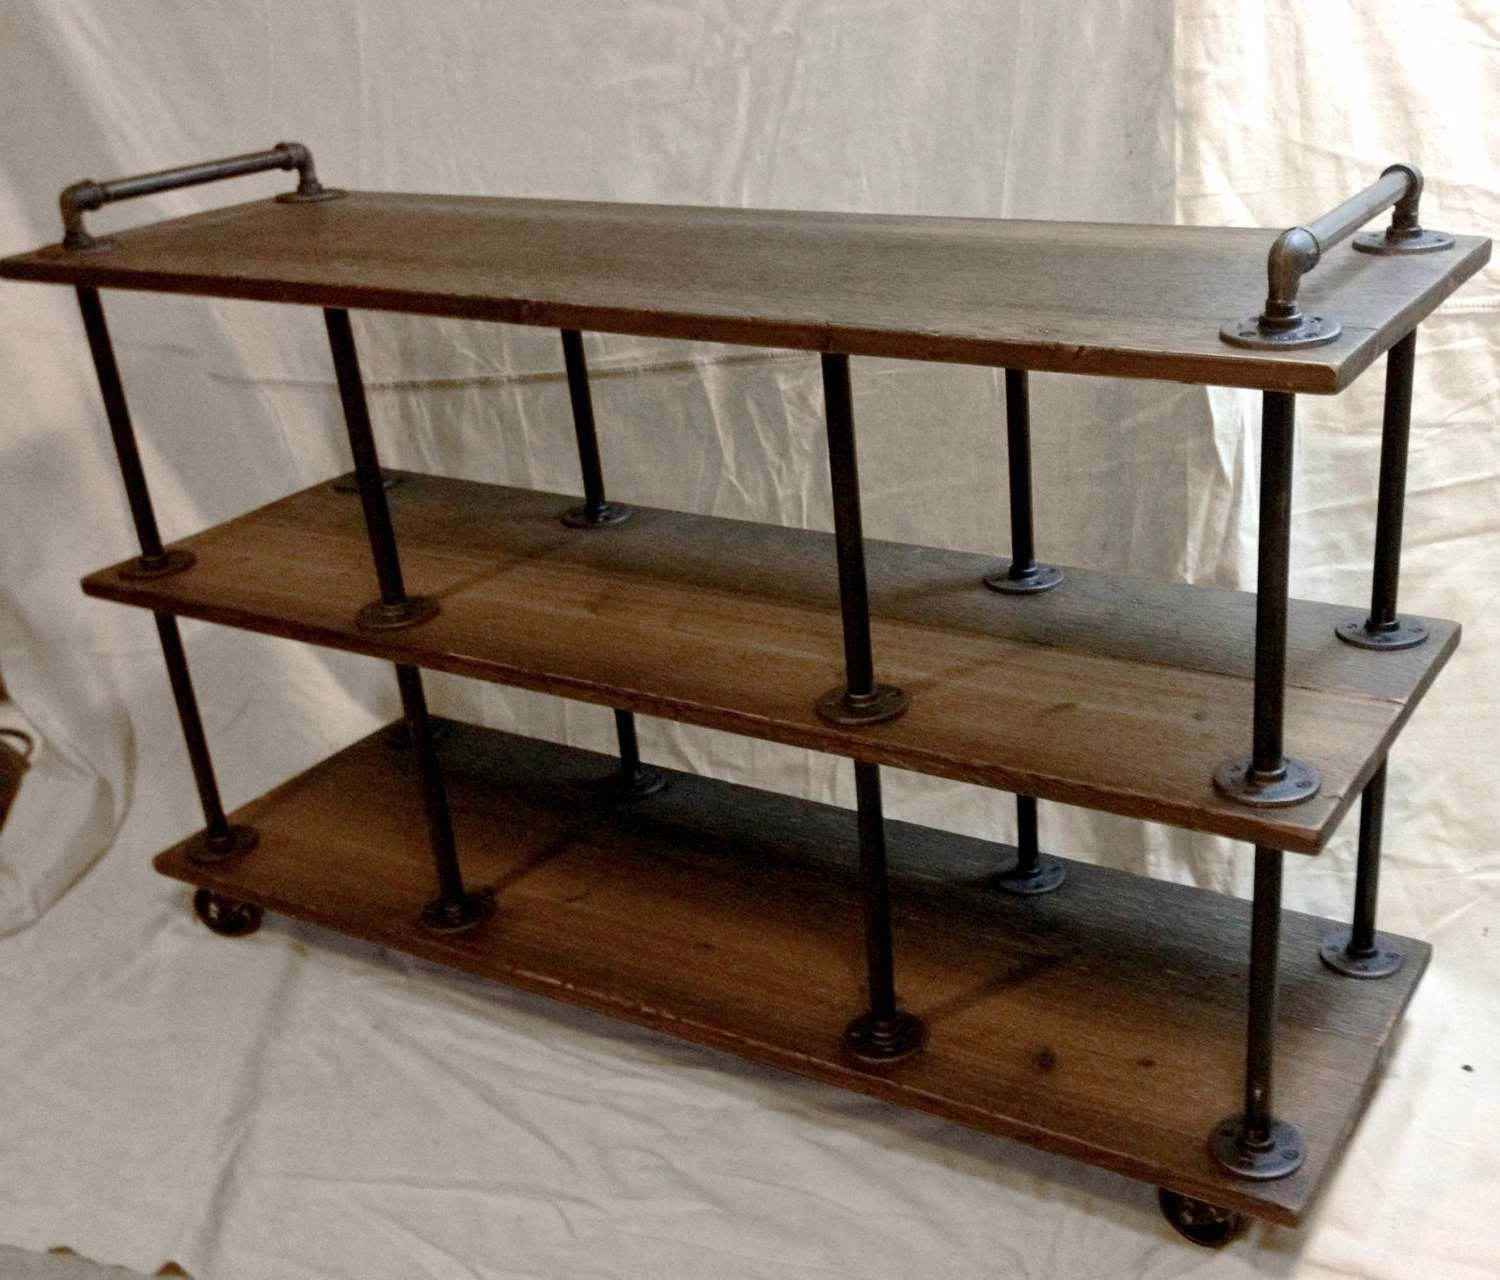 Industrial Tv Stand Iron And Wood For 46 To 52 With Regard To Rustic Tv Cabinets (Gallery 19 of 20)